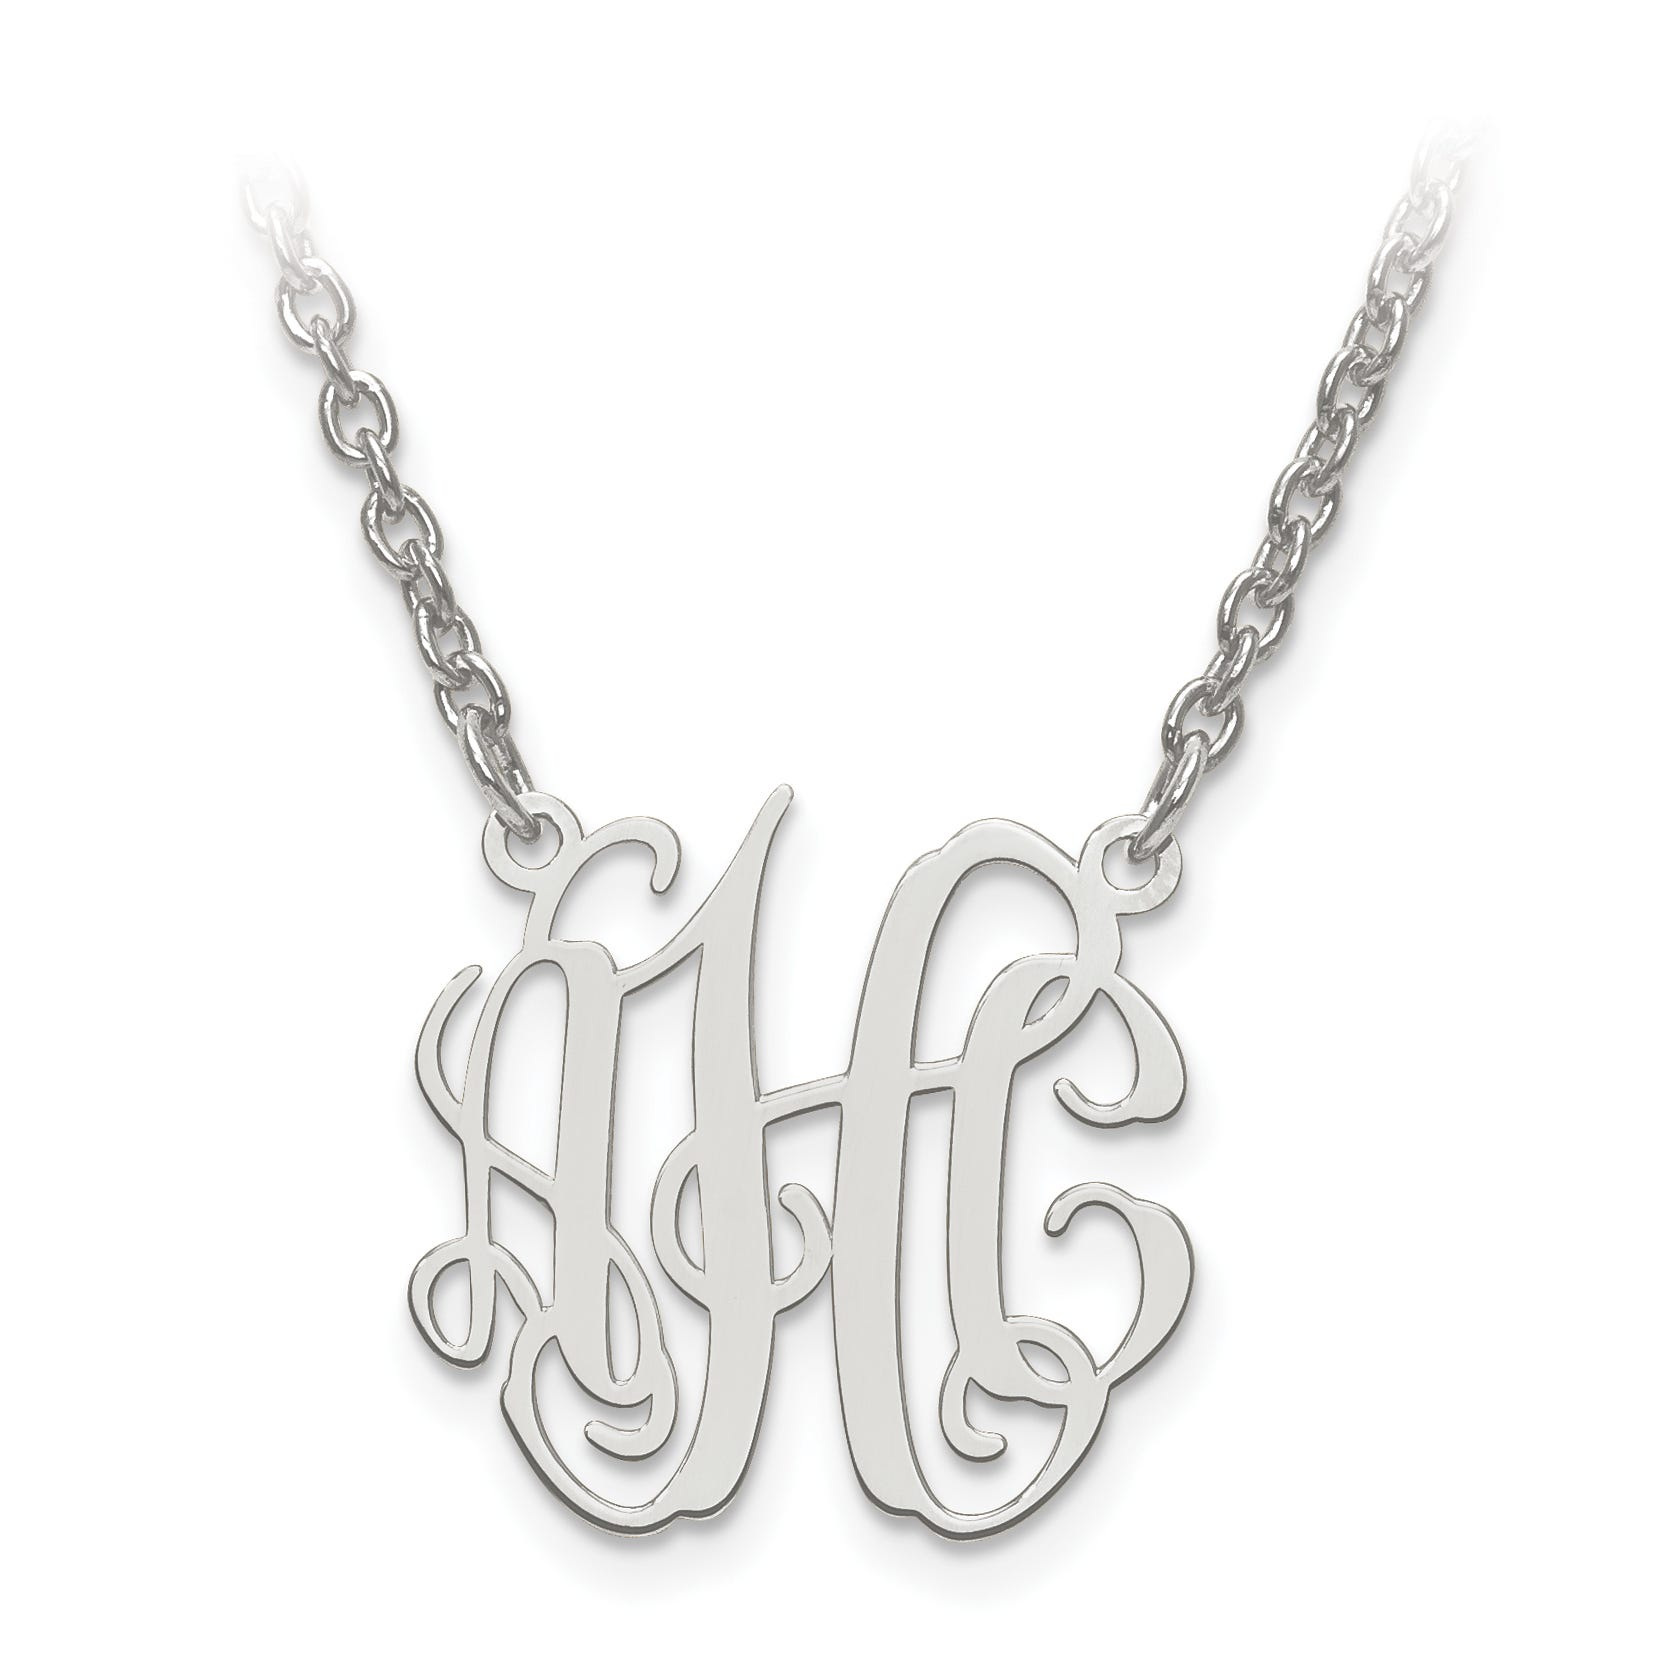 Laser Circular Shaped 18x19 Monogram Plate Pendant in Sterling Silver (up to 3 letters)